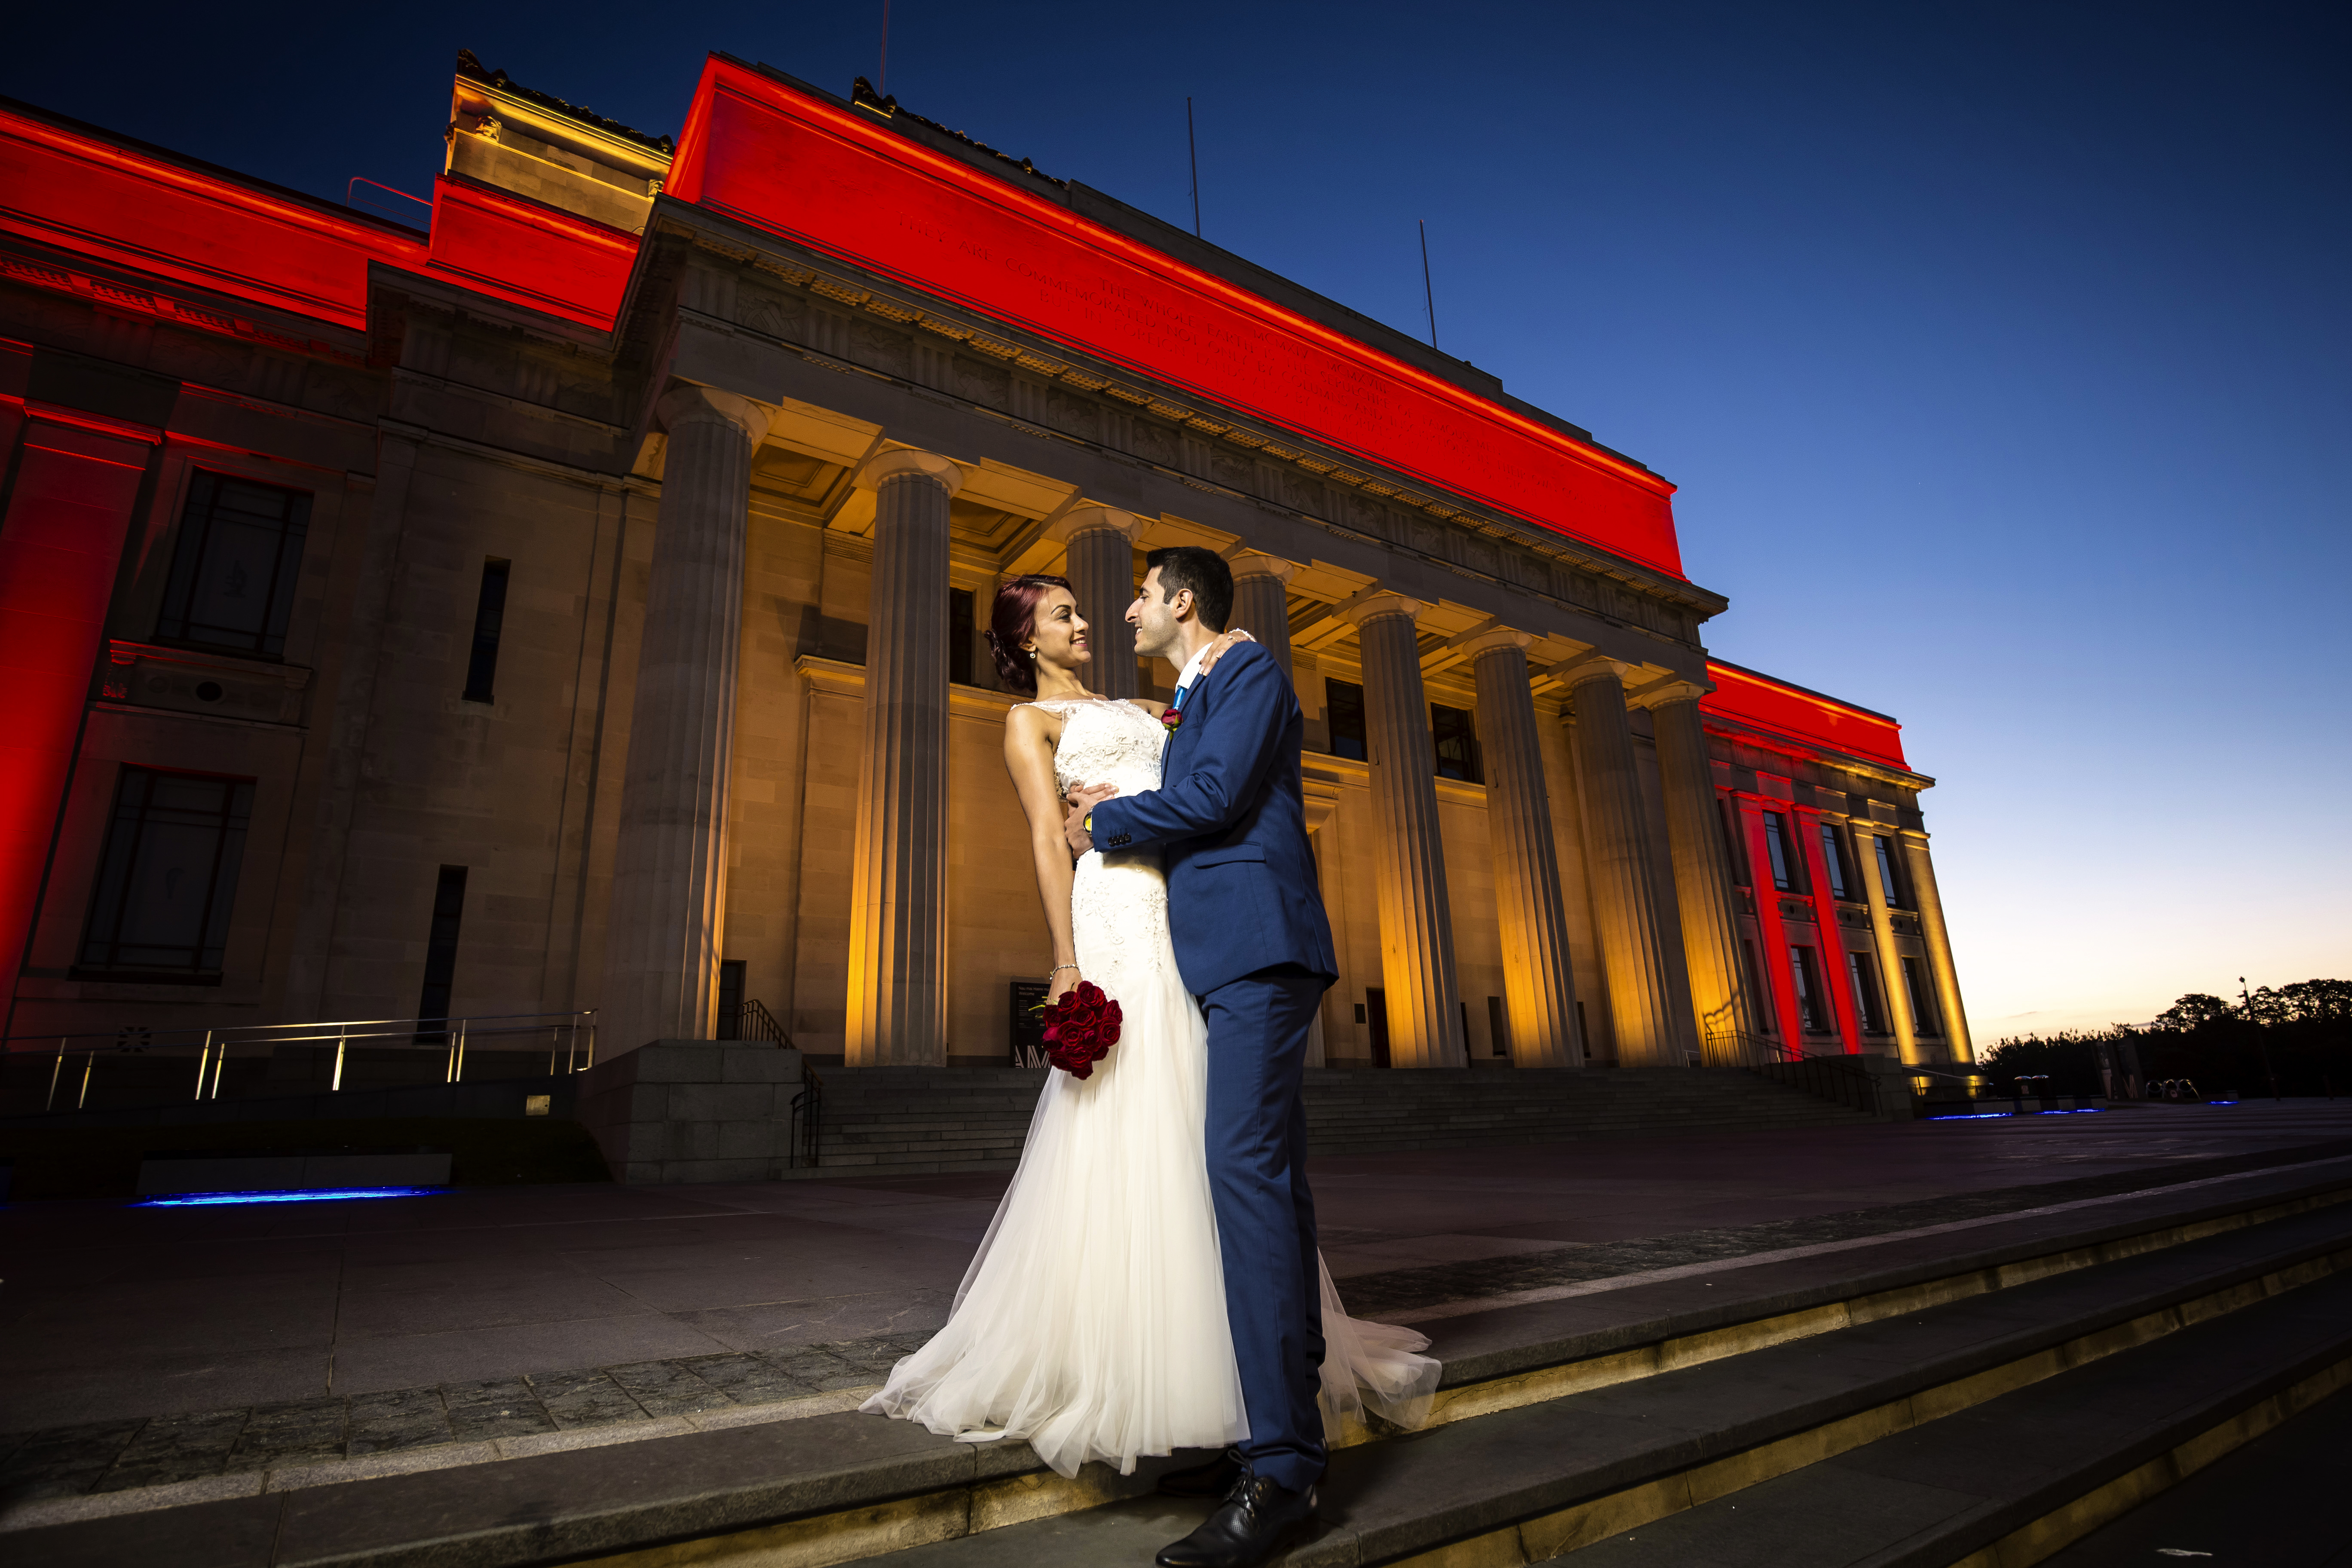 Weddin Photography in Aucklan Museum